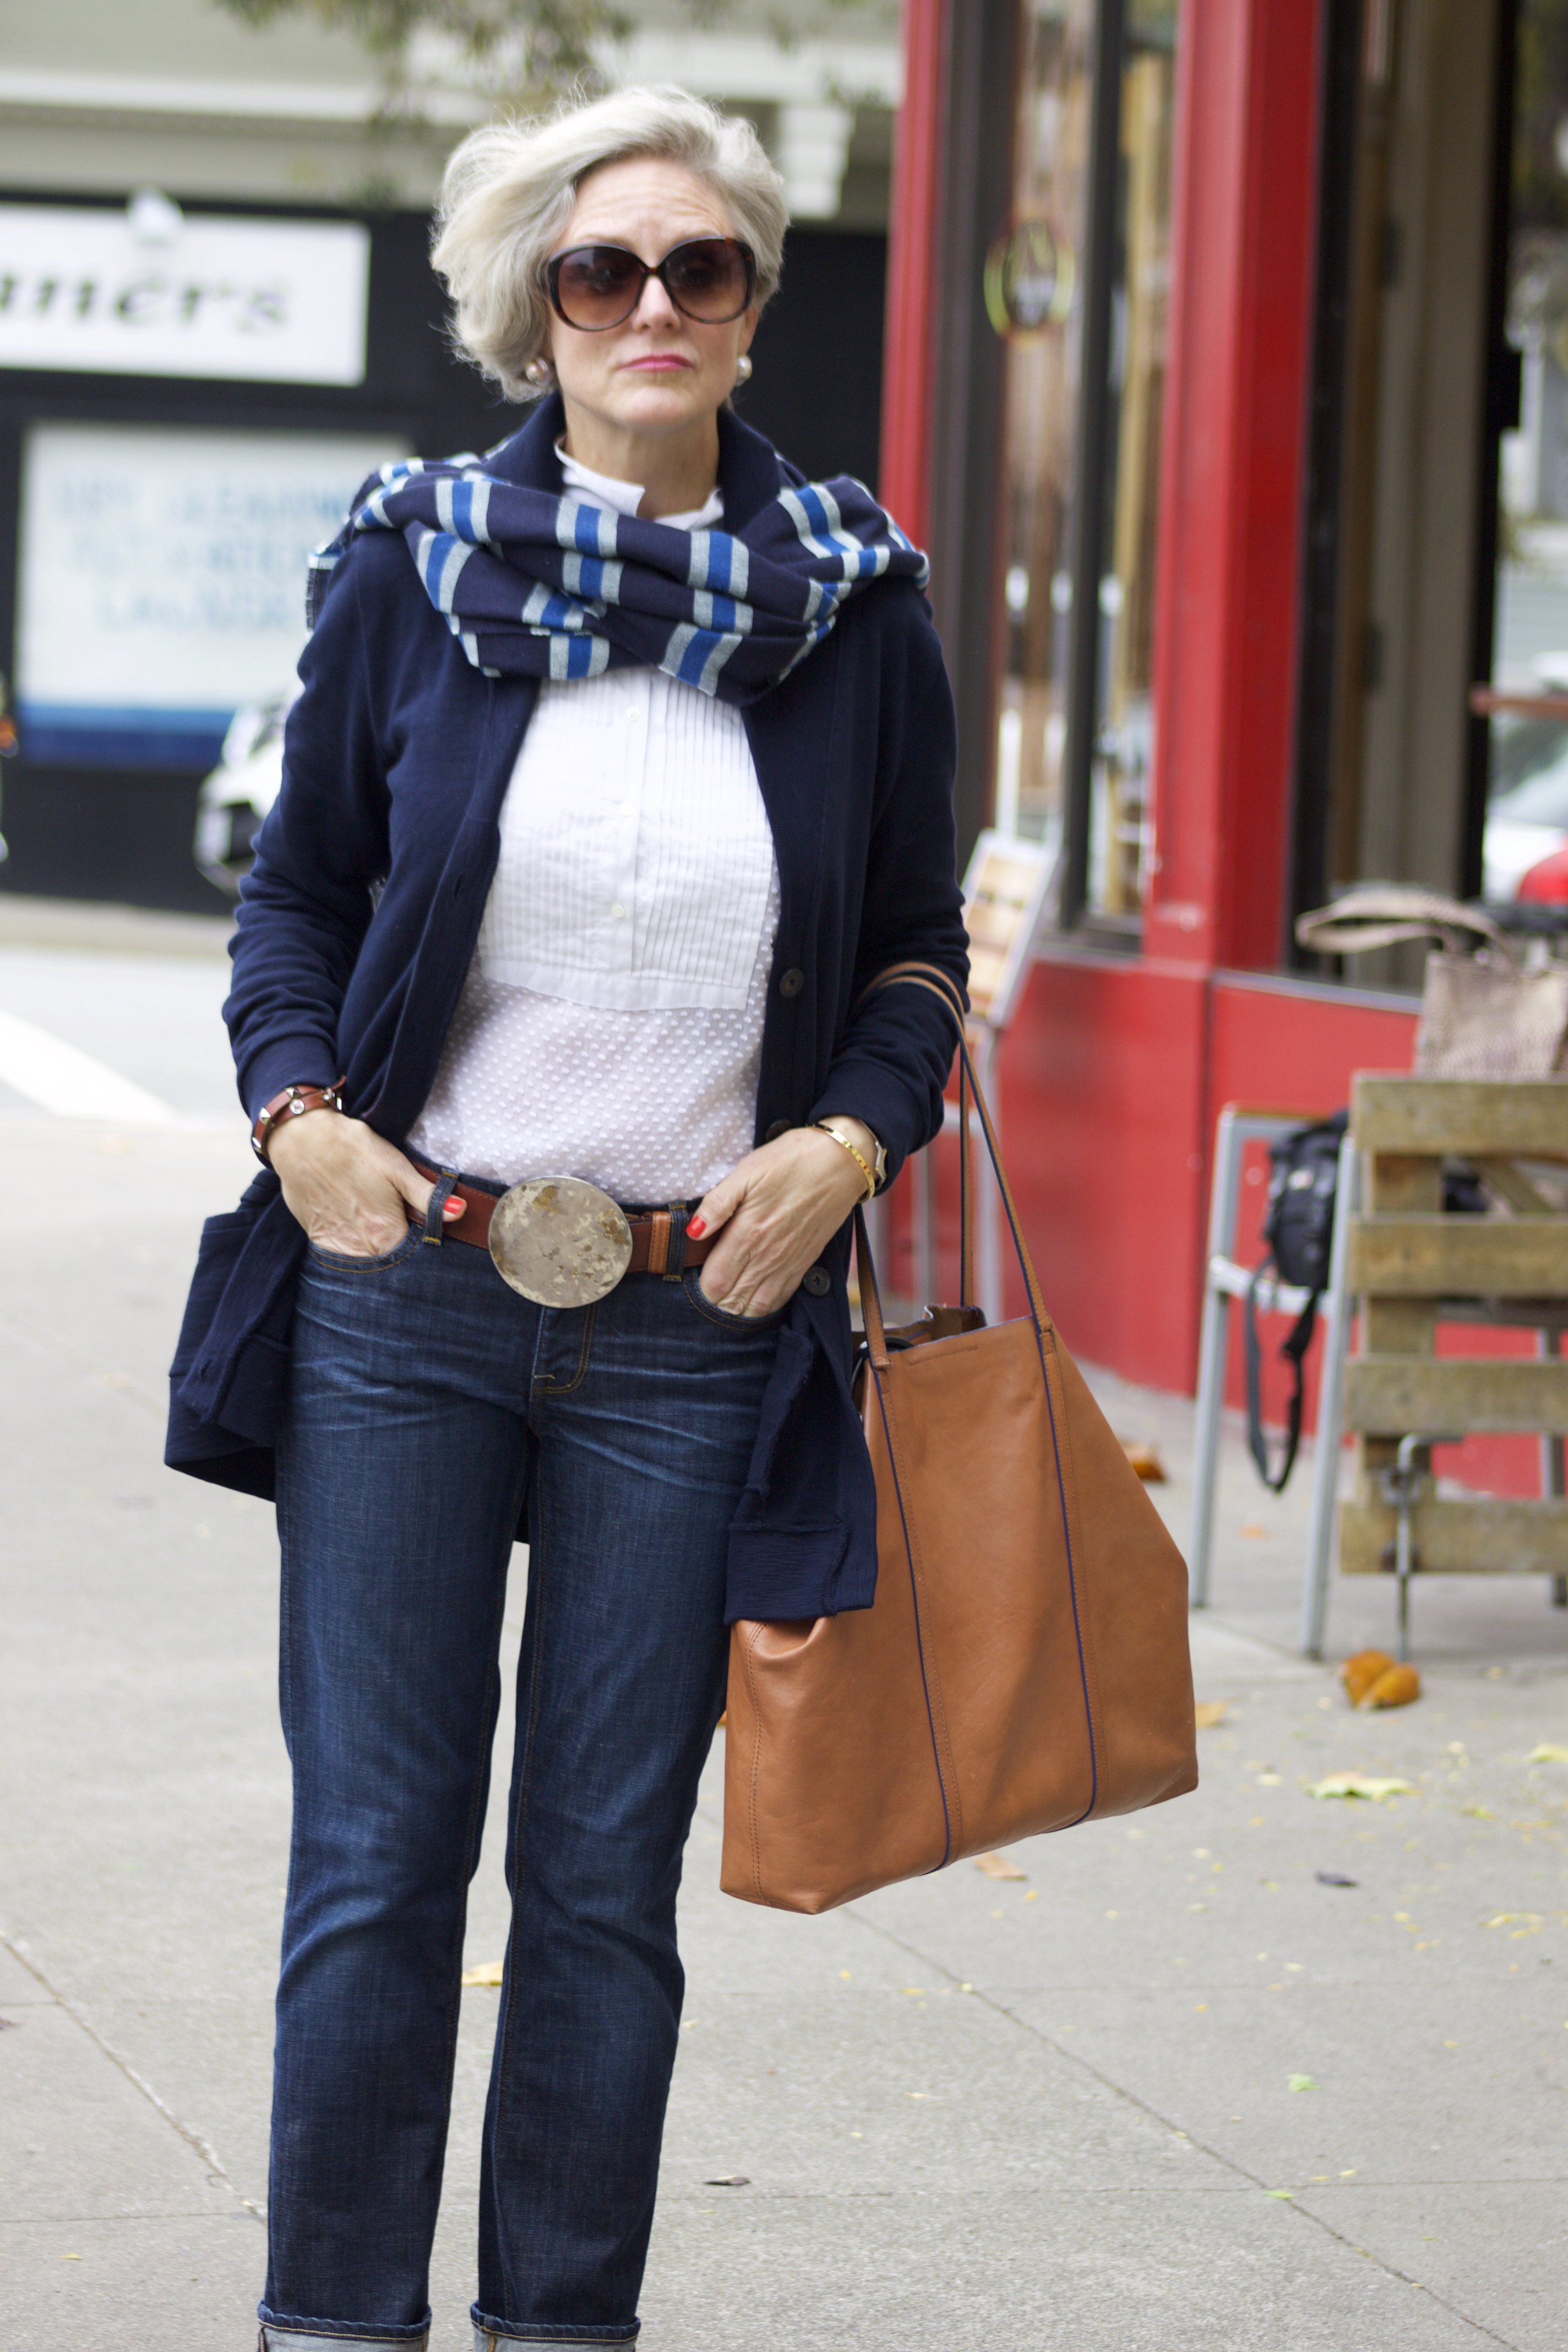 Blue Jeans And Boyfriend Sweater Style At A Certain Age